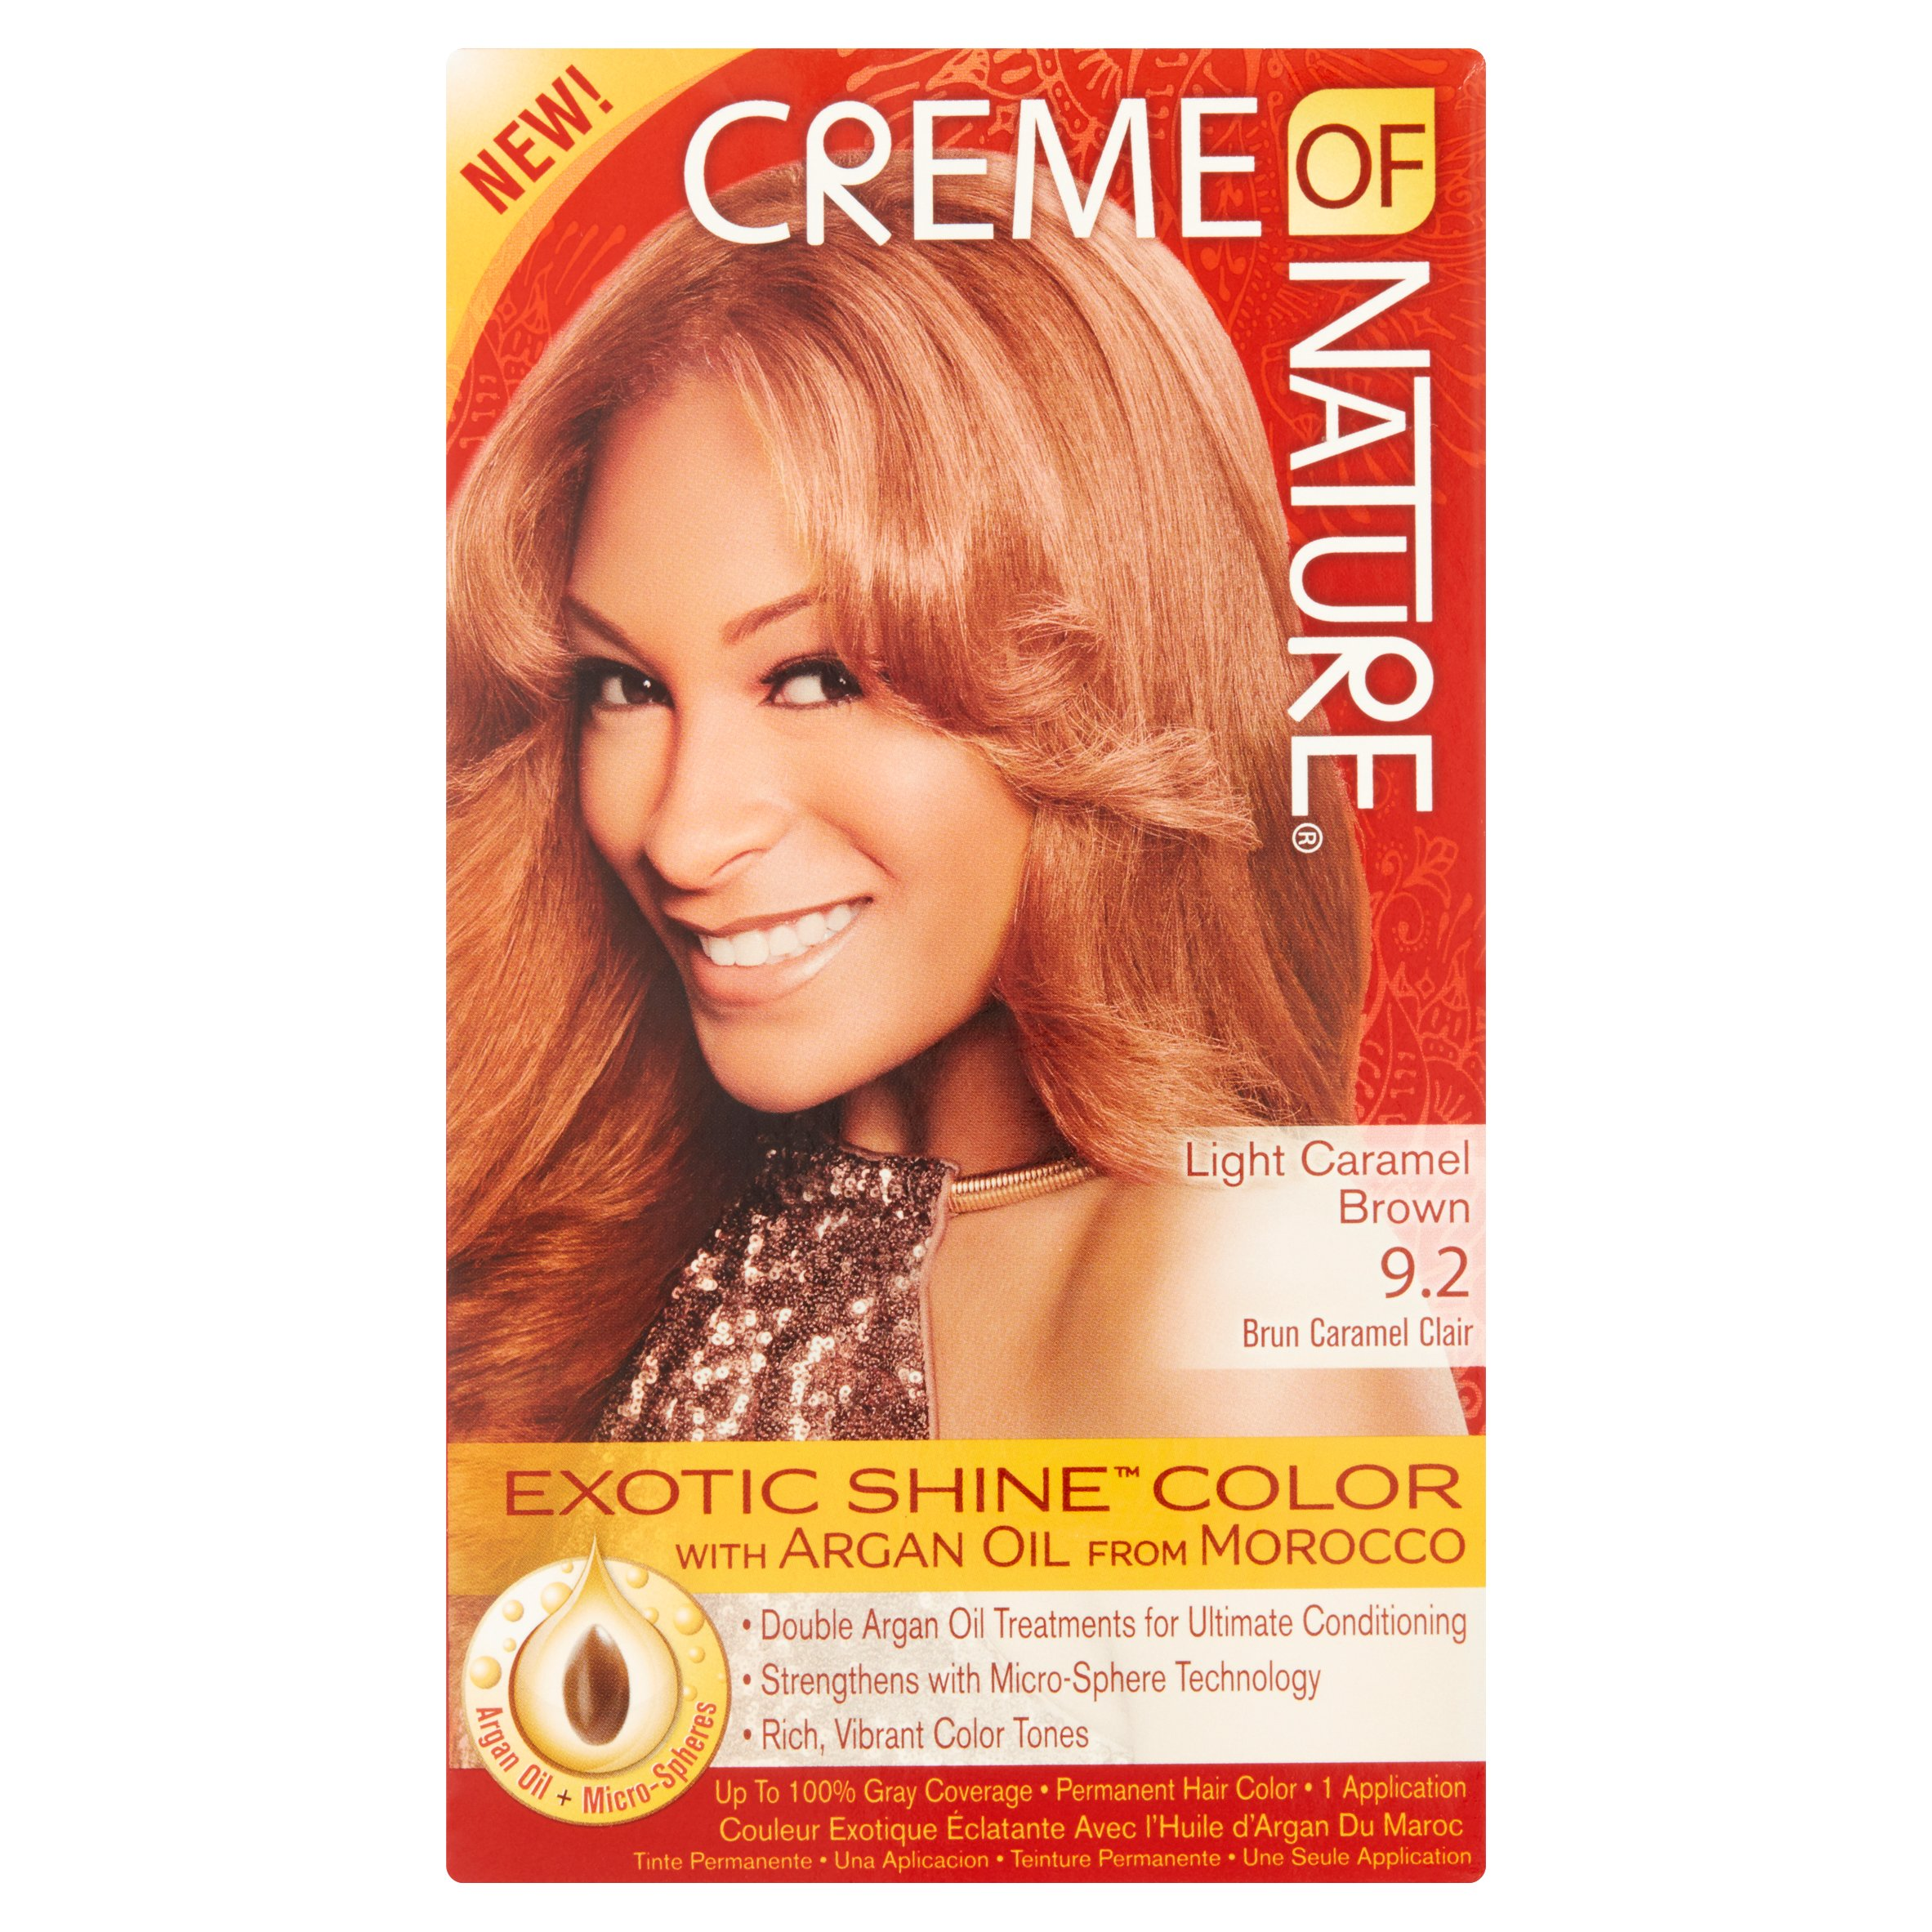 Creme of Nature Light Caramel Brown 9.2 Brun Caramel Clair ...